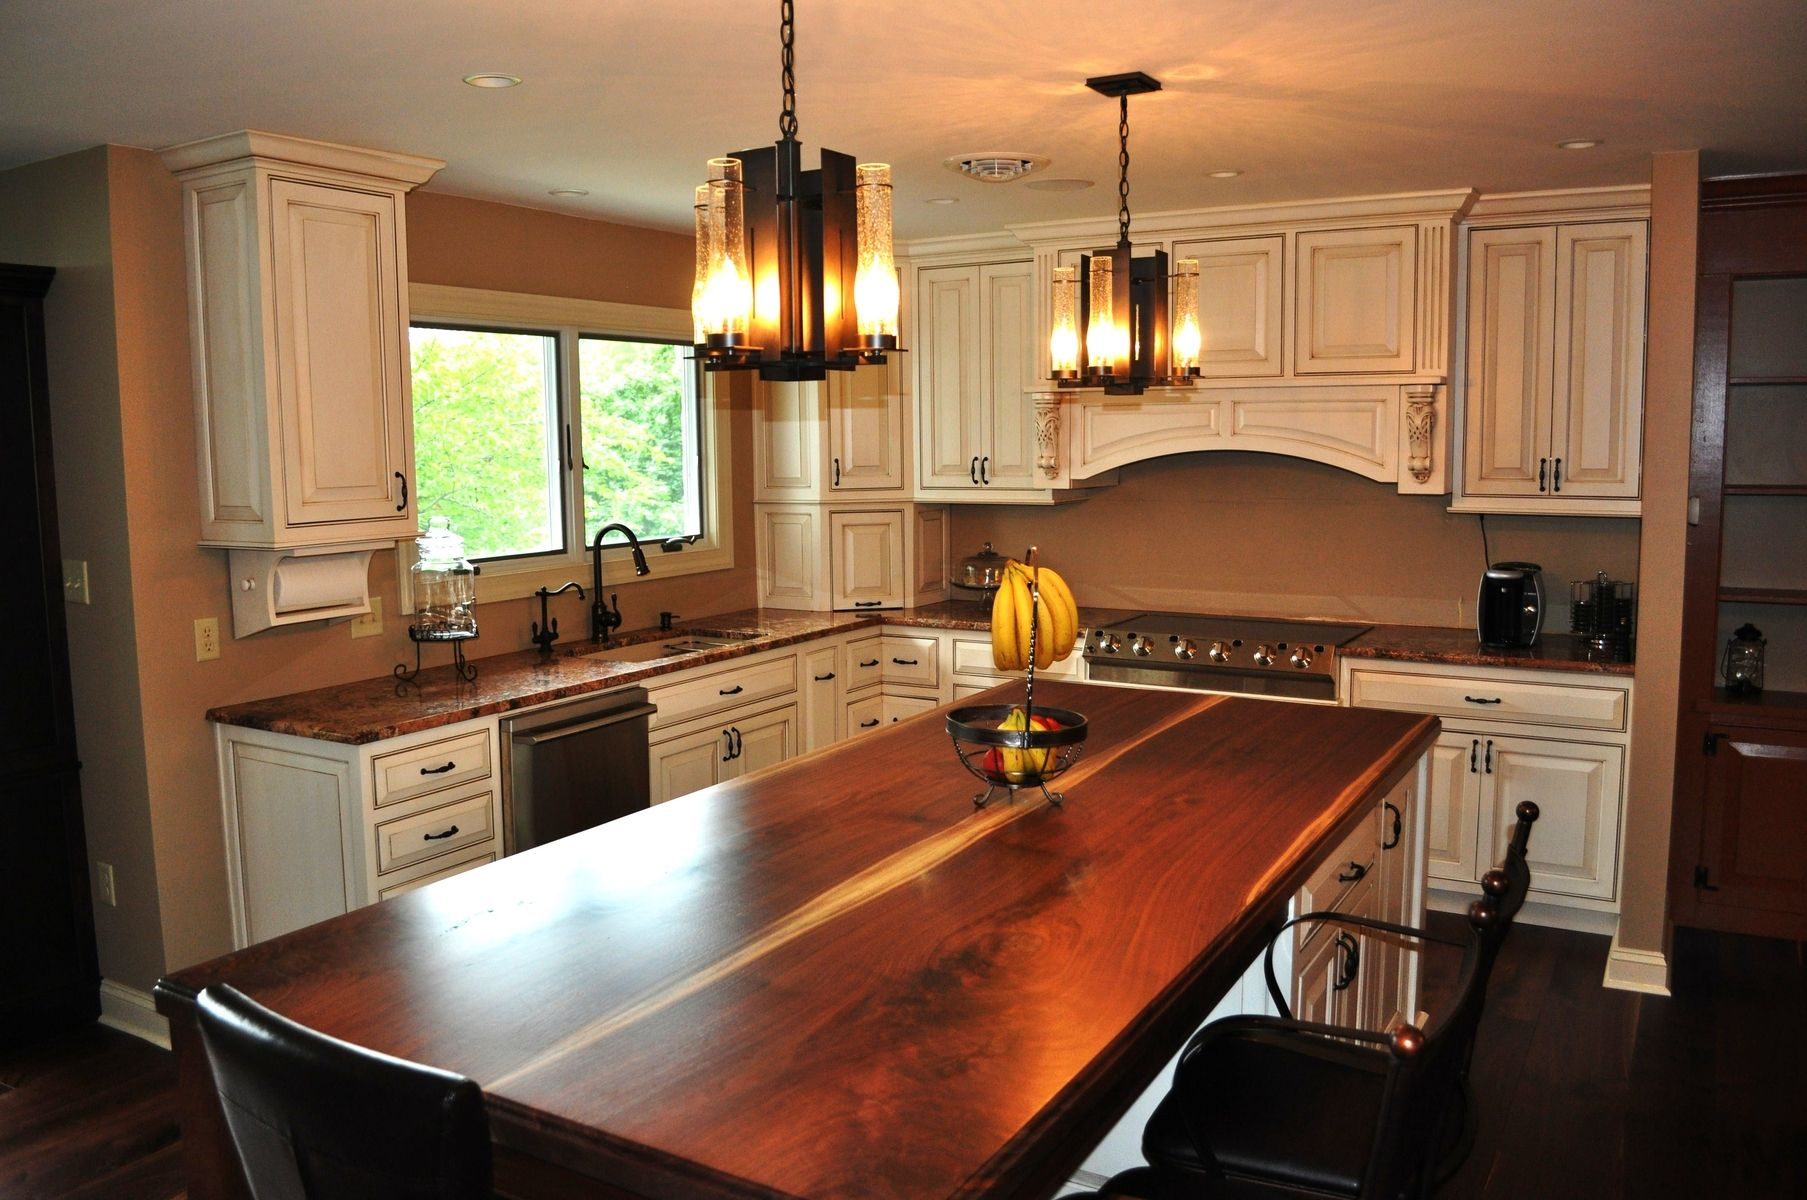 custom made french country style kitchen - Country Style Kitchen Island